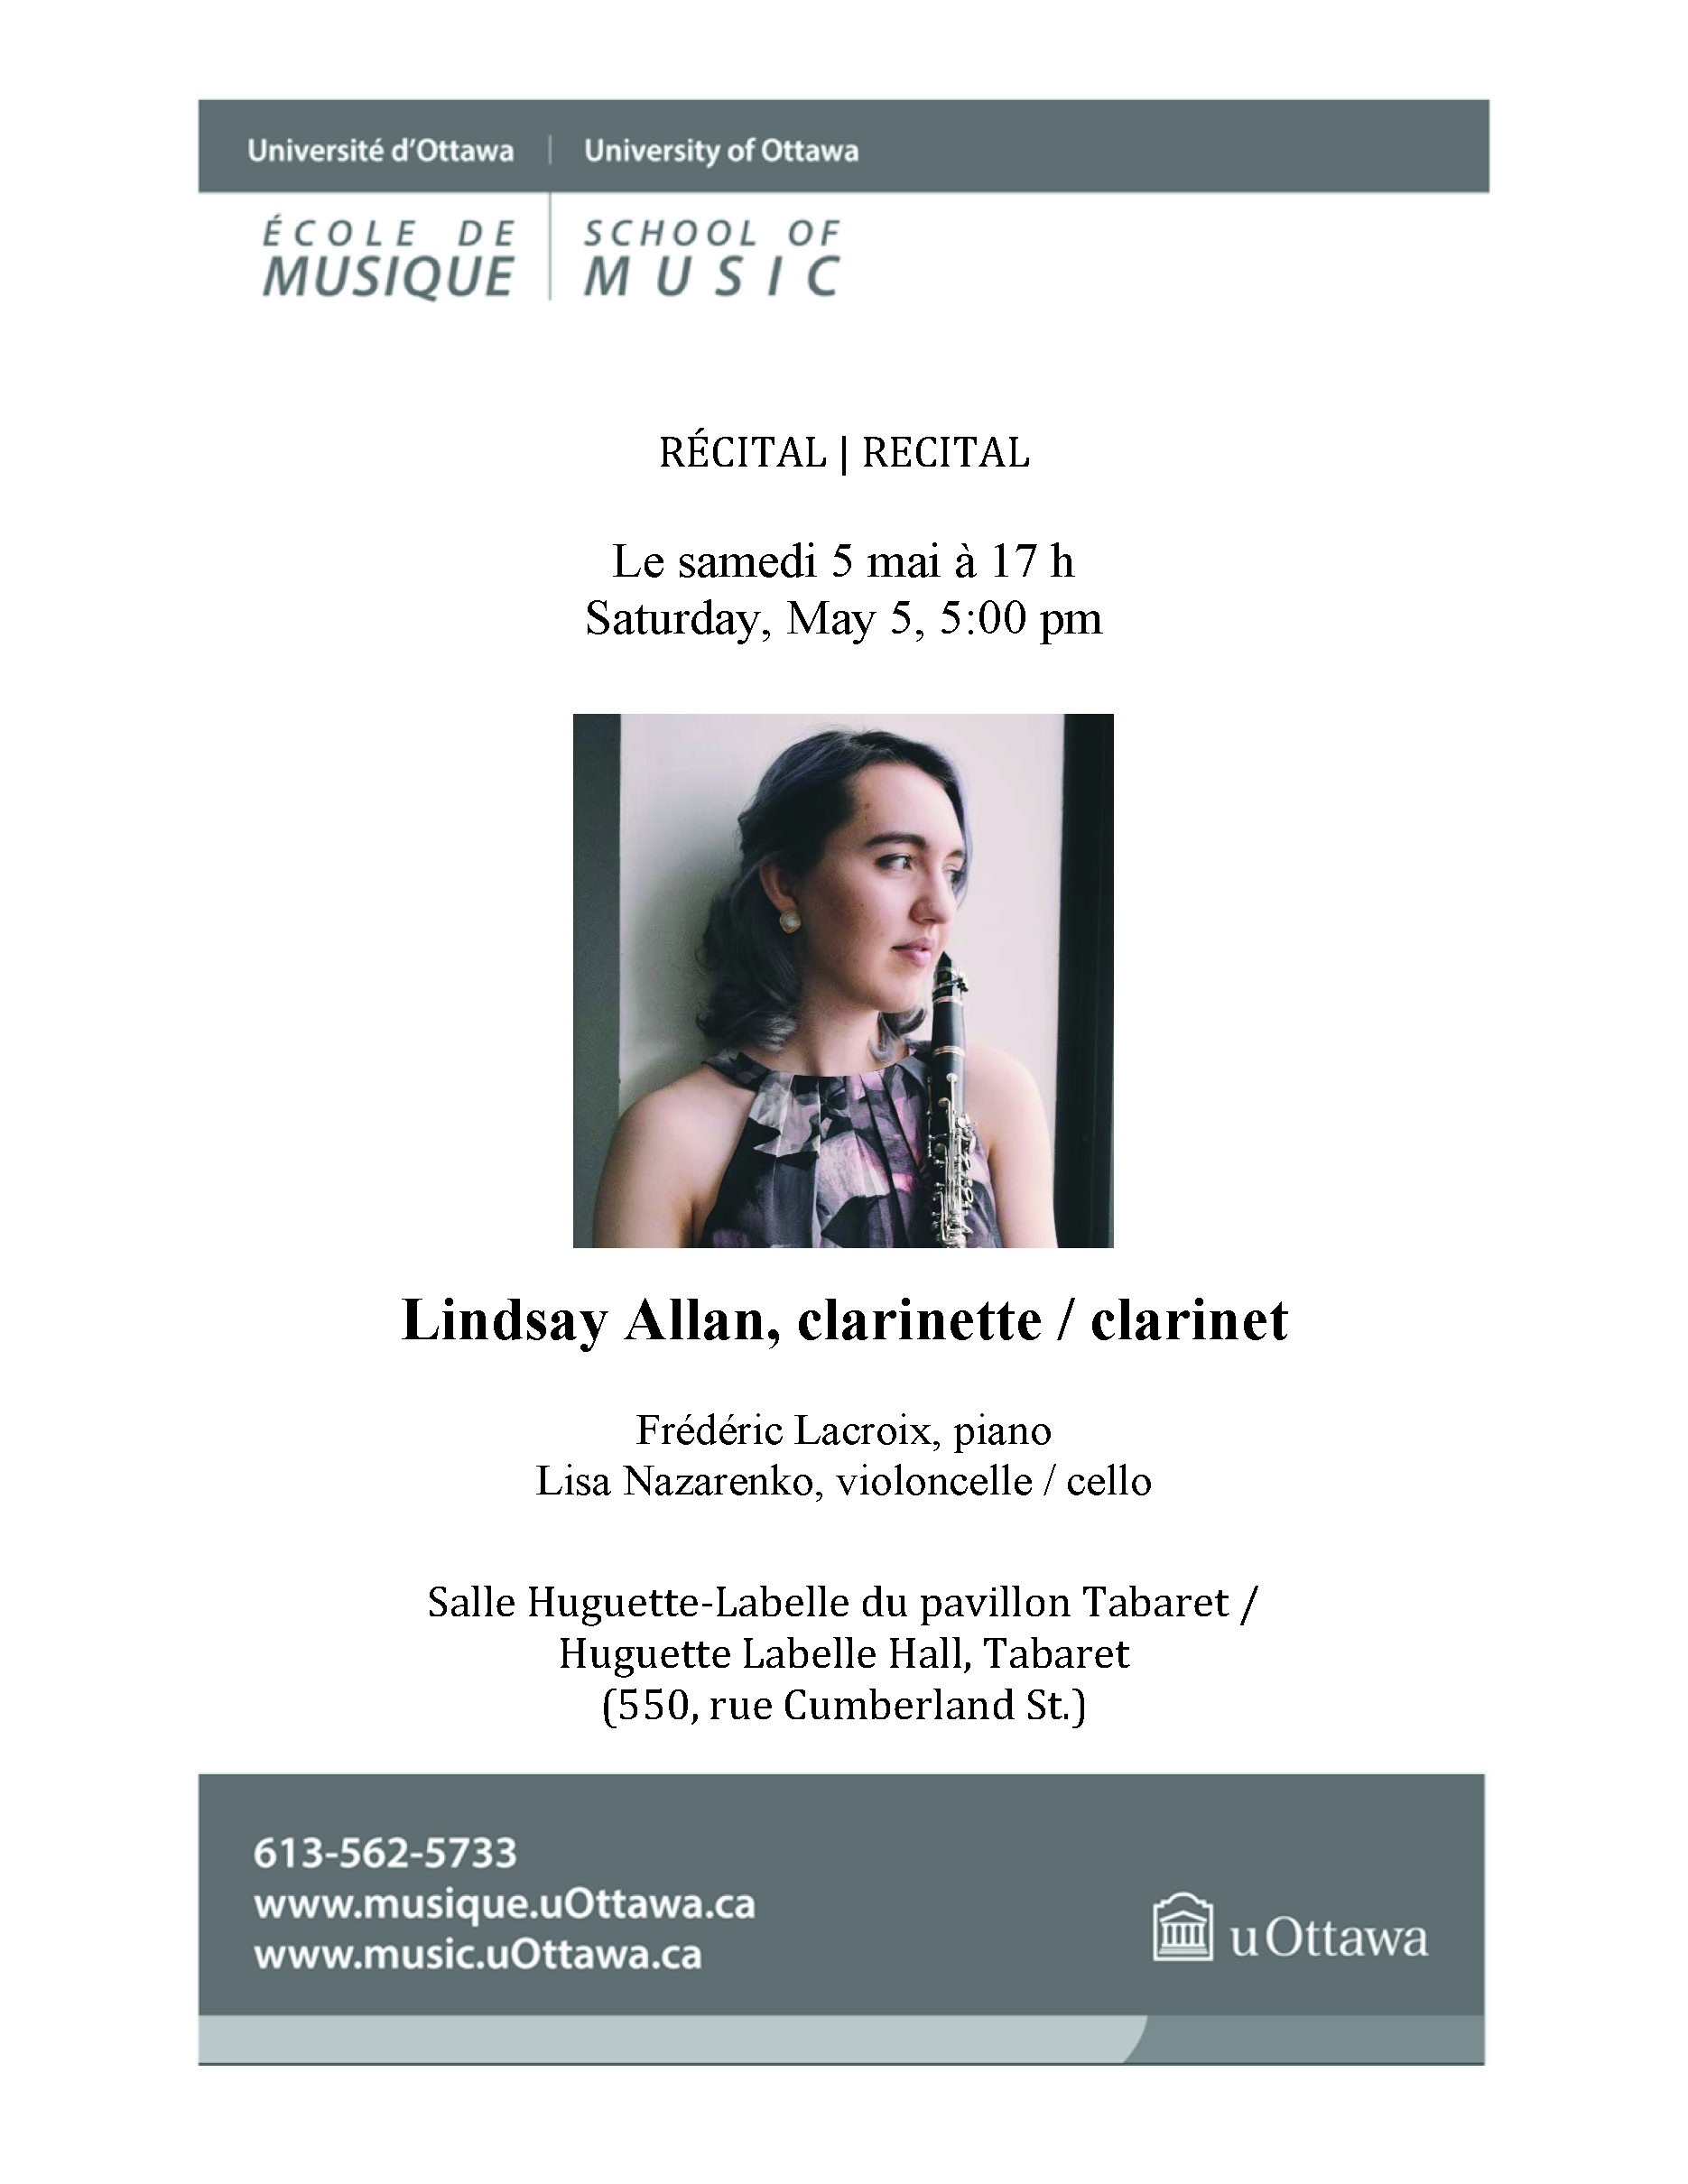 Page 1 of Lindsay Allan's recital program